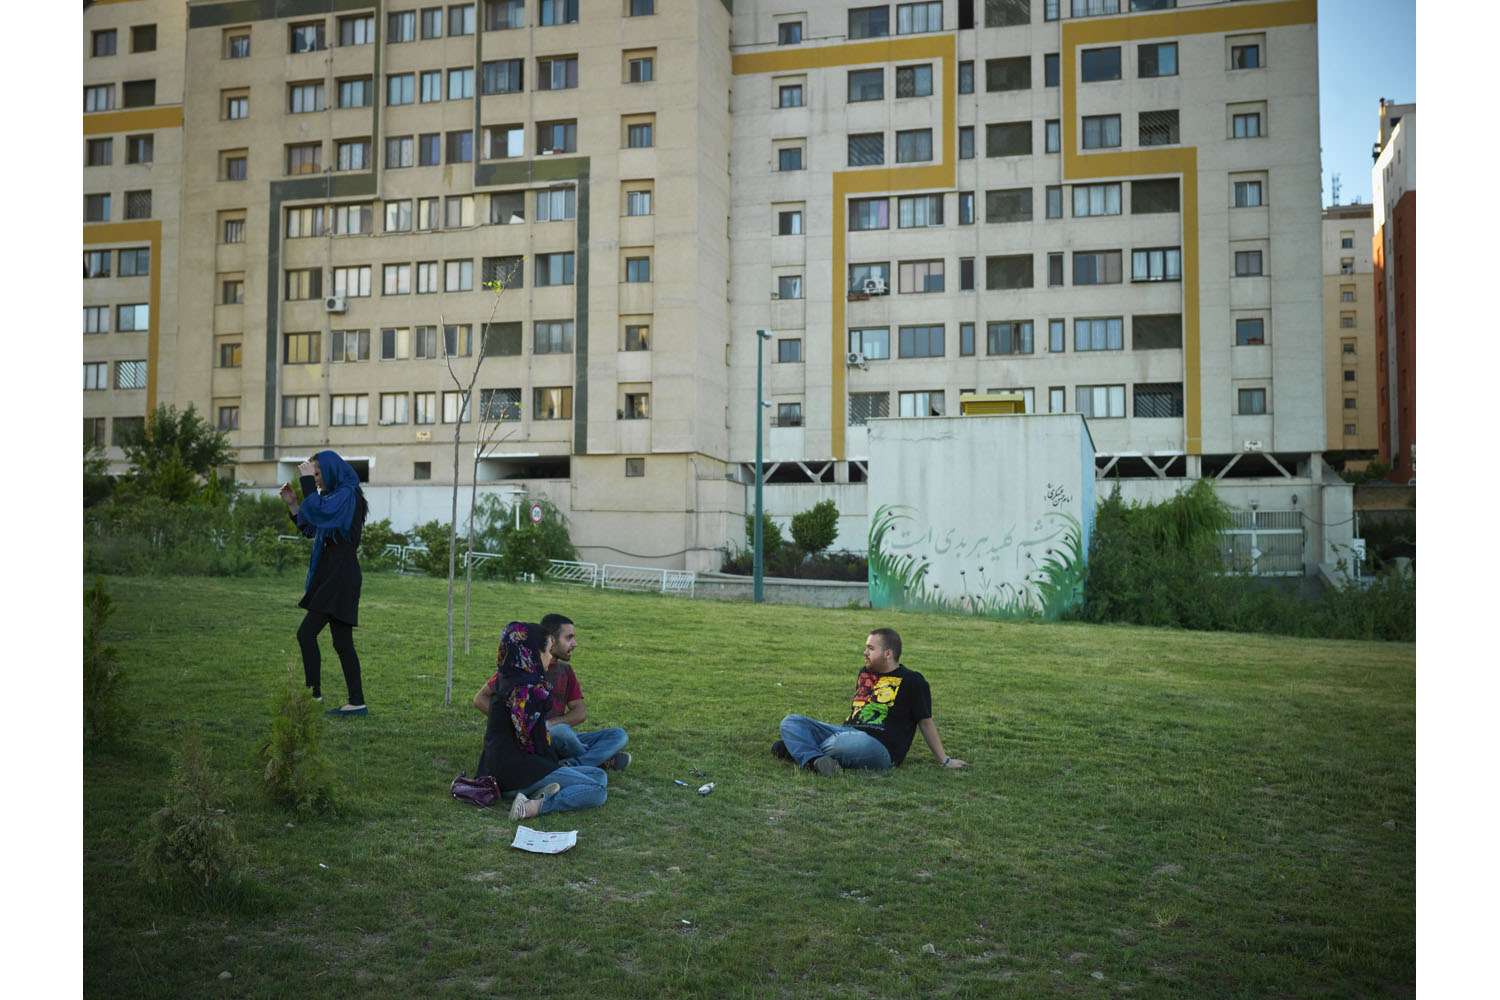 Young Iranians hang out in the western part of Tehran, where mostly middle class families live.